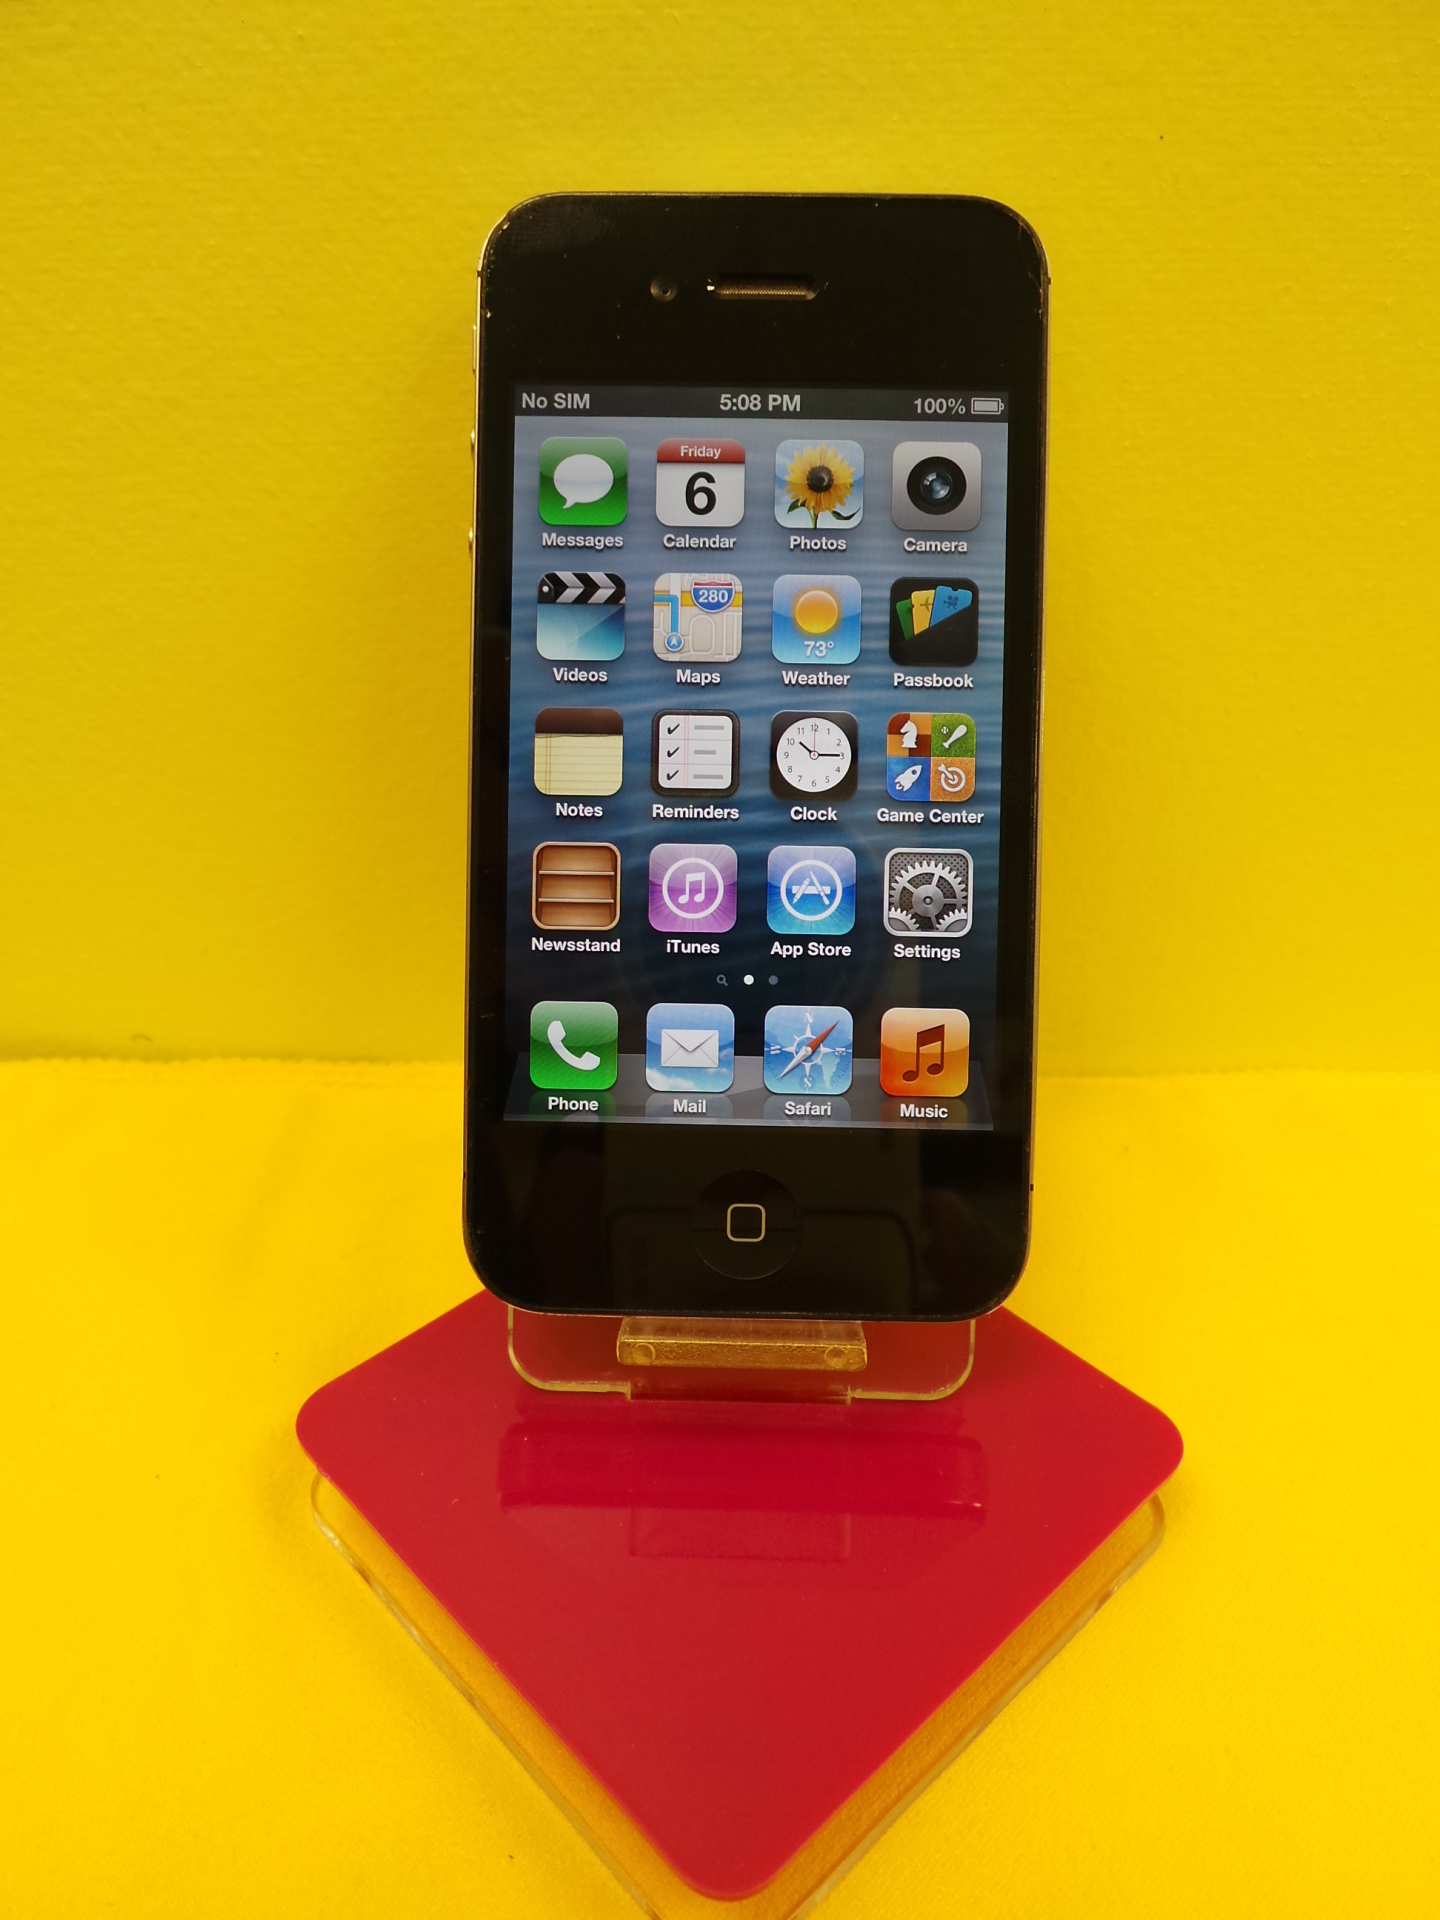 used iphone 4s, used iphone 4s sale, used iphone, iphone unlocked